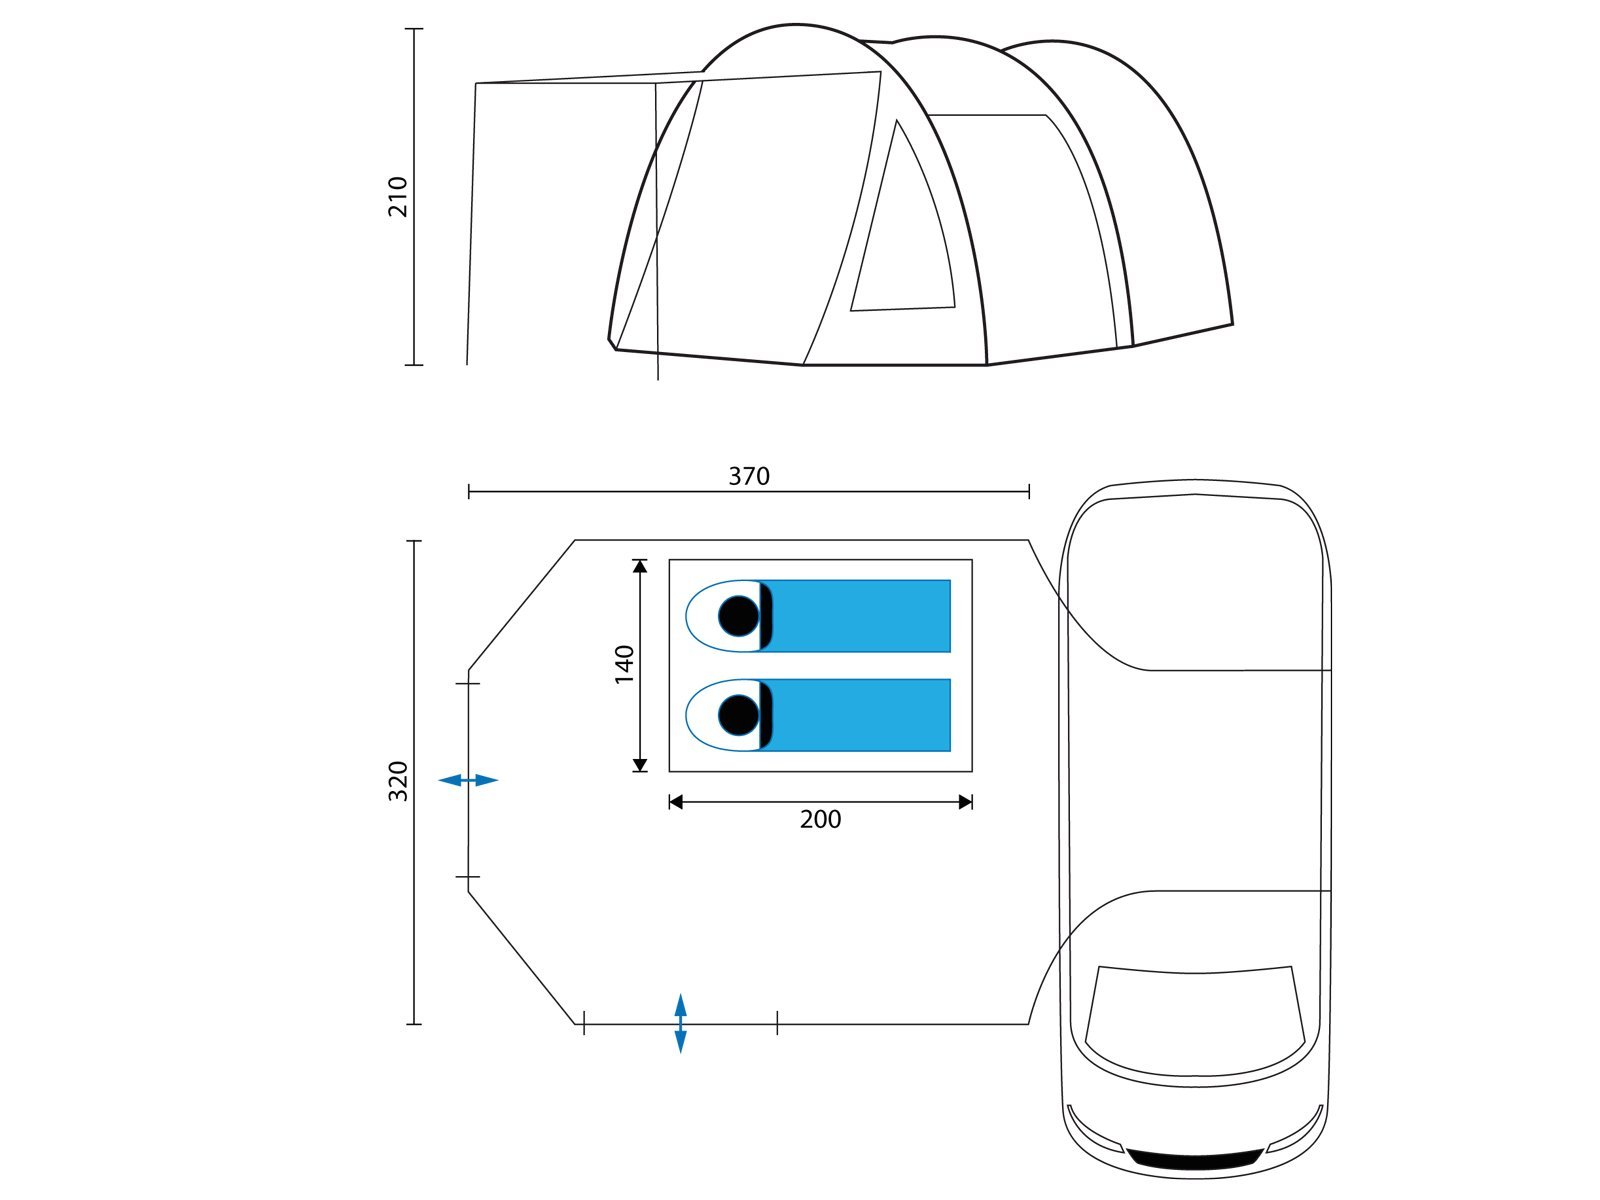 Skandika Camper Tramp Free-Standing Minivan Awning Tent with 2-Berth Sleeping Cabin and 210 cm Peak Height, Sand/Red, 2 Persons 7